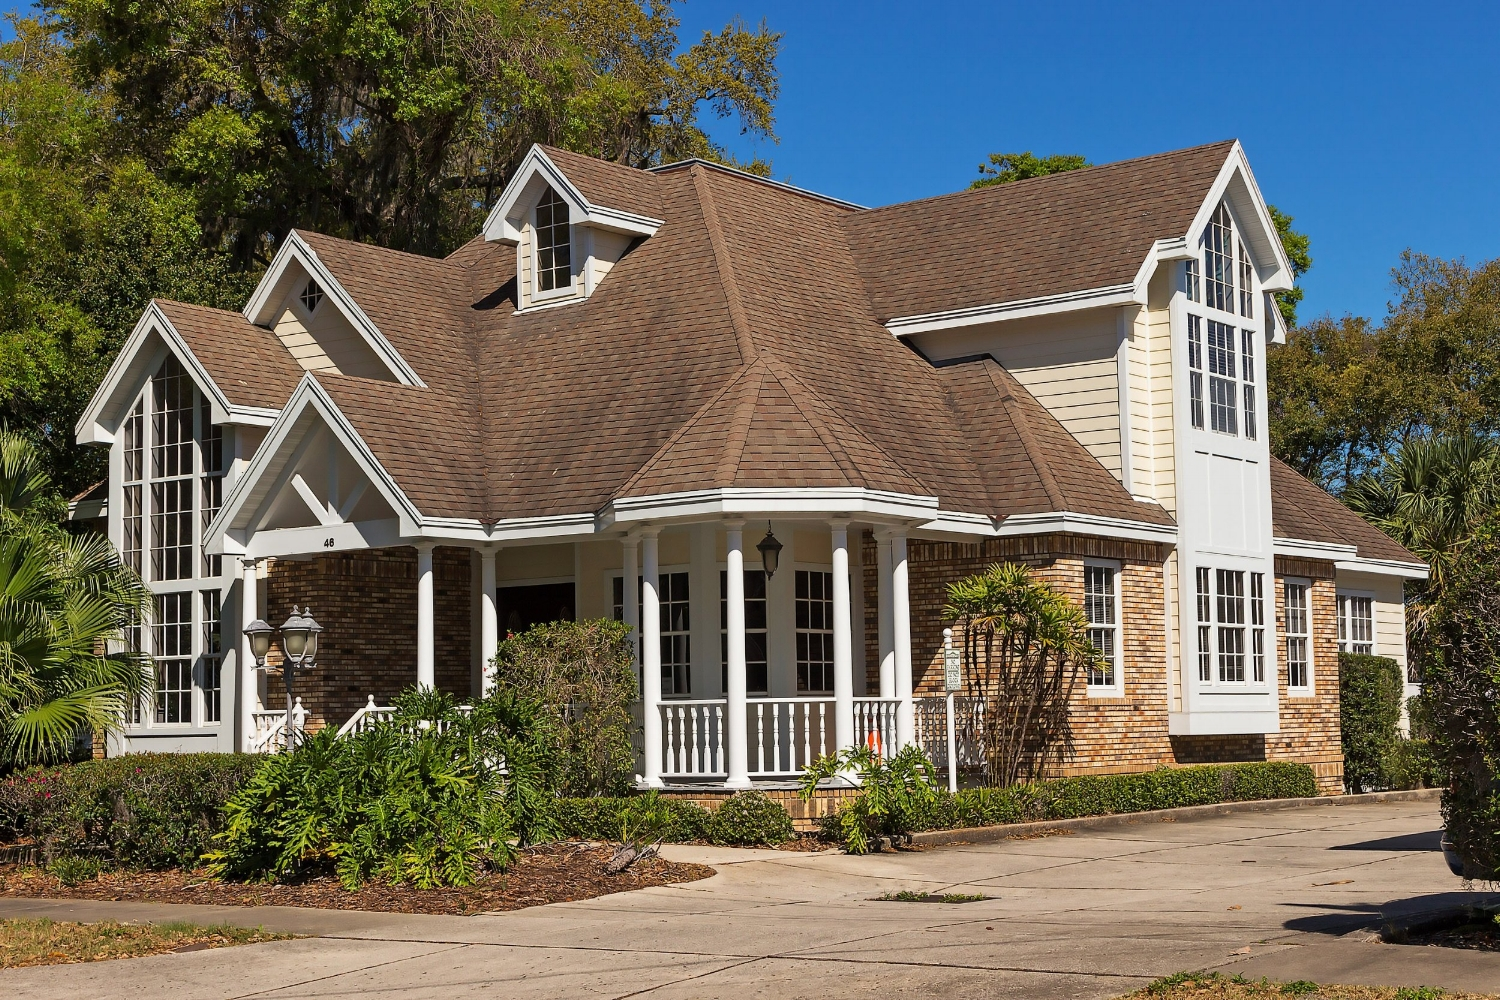 exterior-remodeling-porch-work-architecture-home-259751.jpg